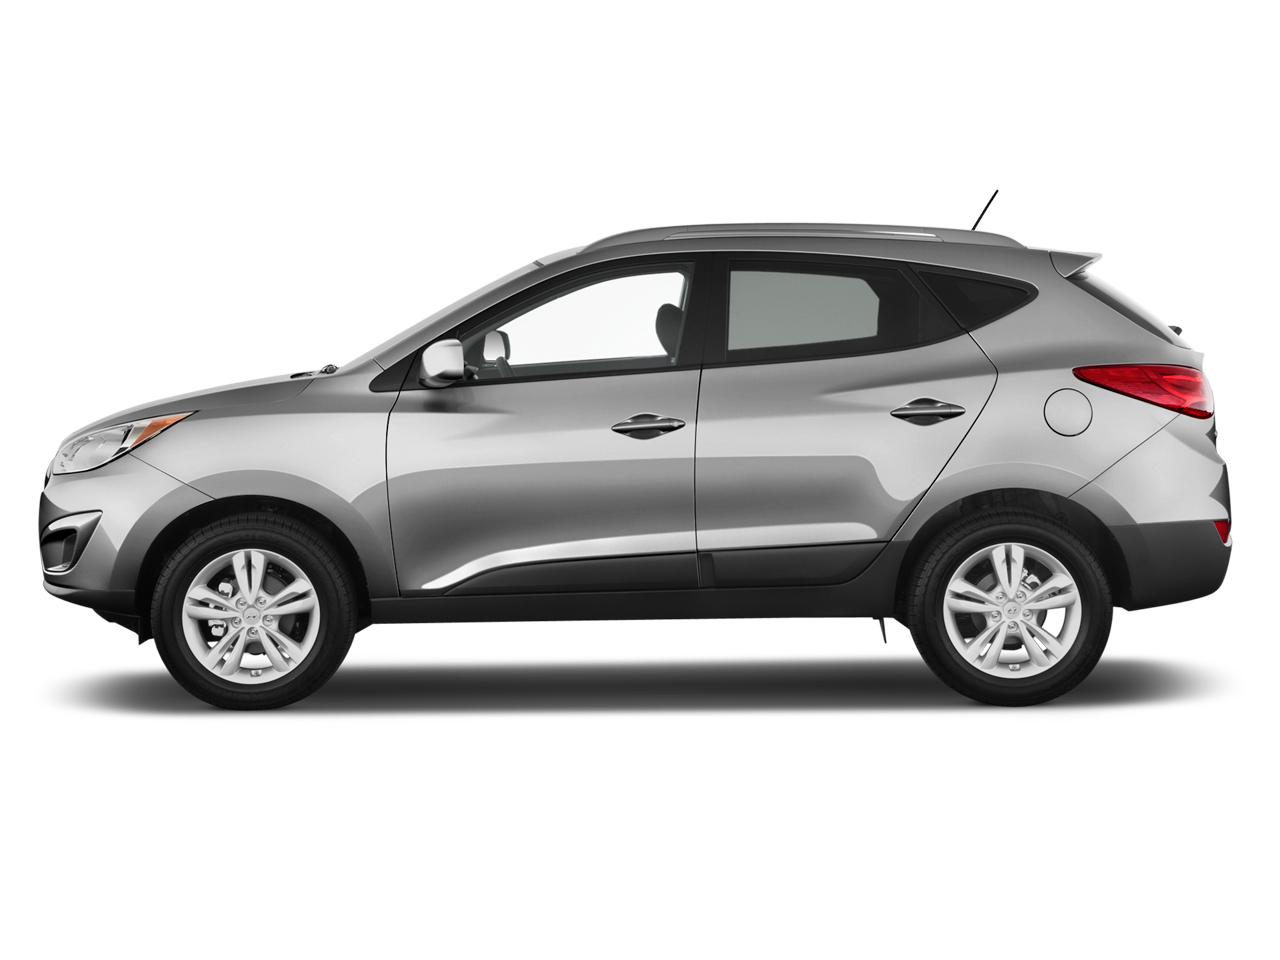 2012 Hyundai Tucson Gas Mileage The Car Connection